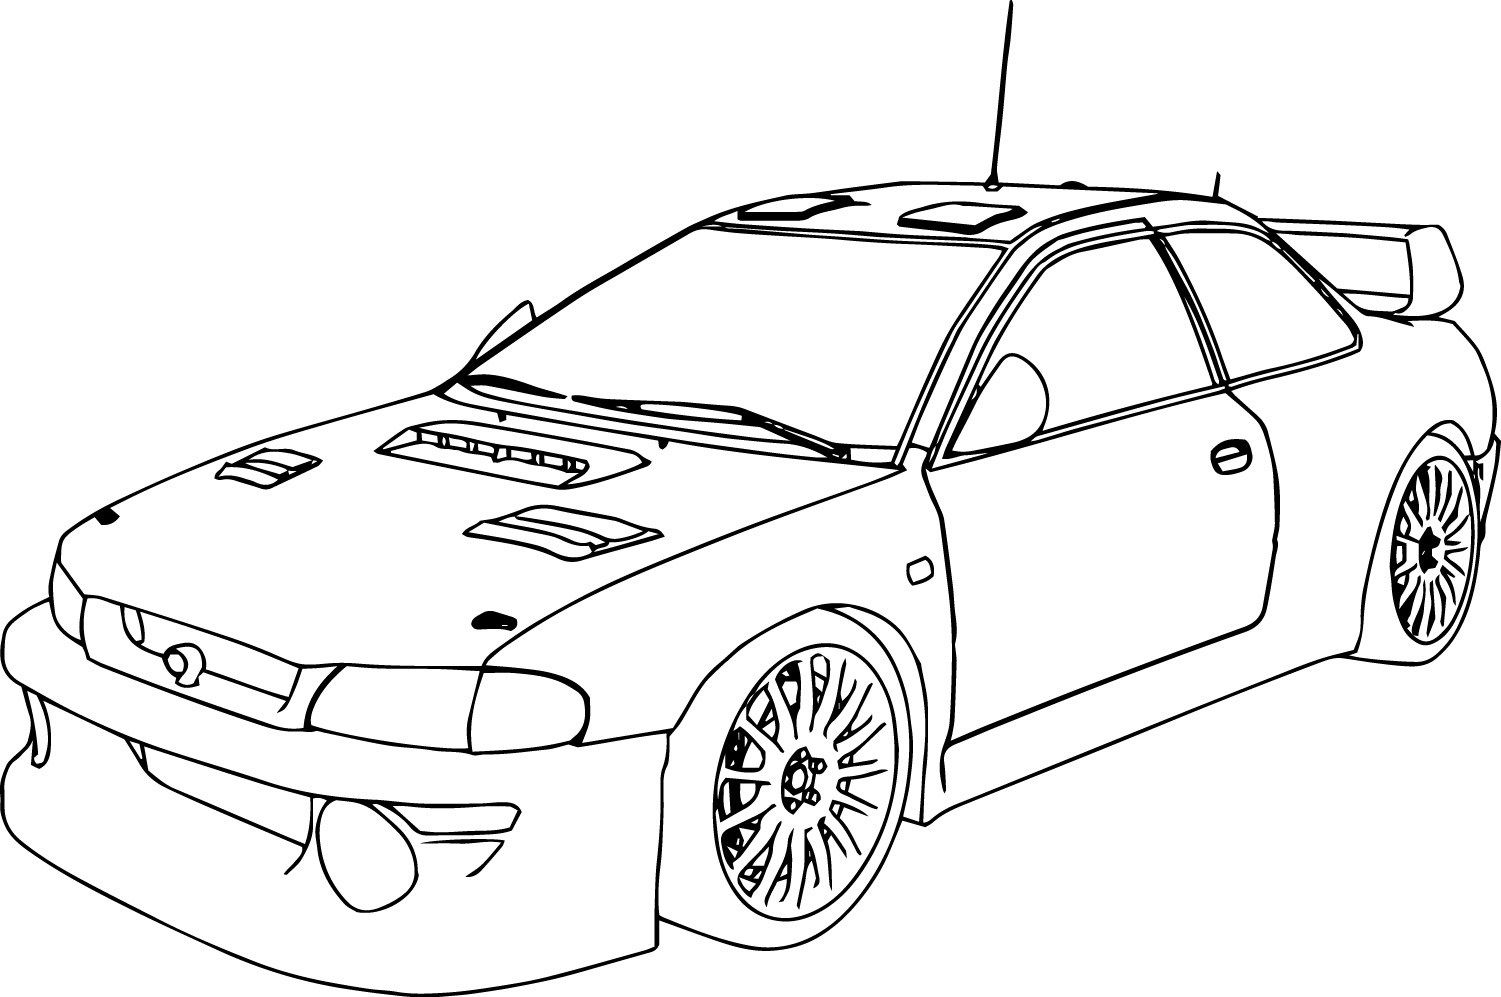 coloring page race car 29 best images about coloring pages on pinterest cars page car coloring race